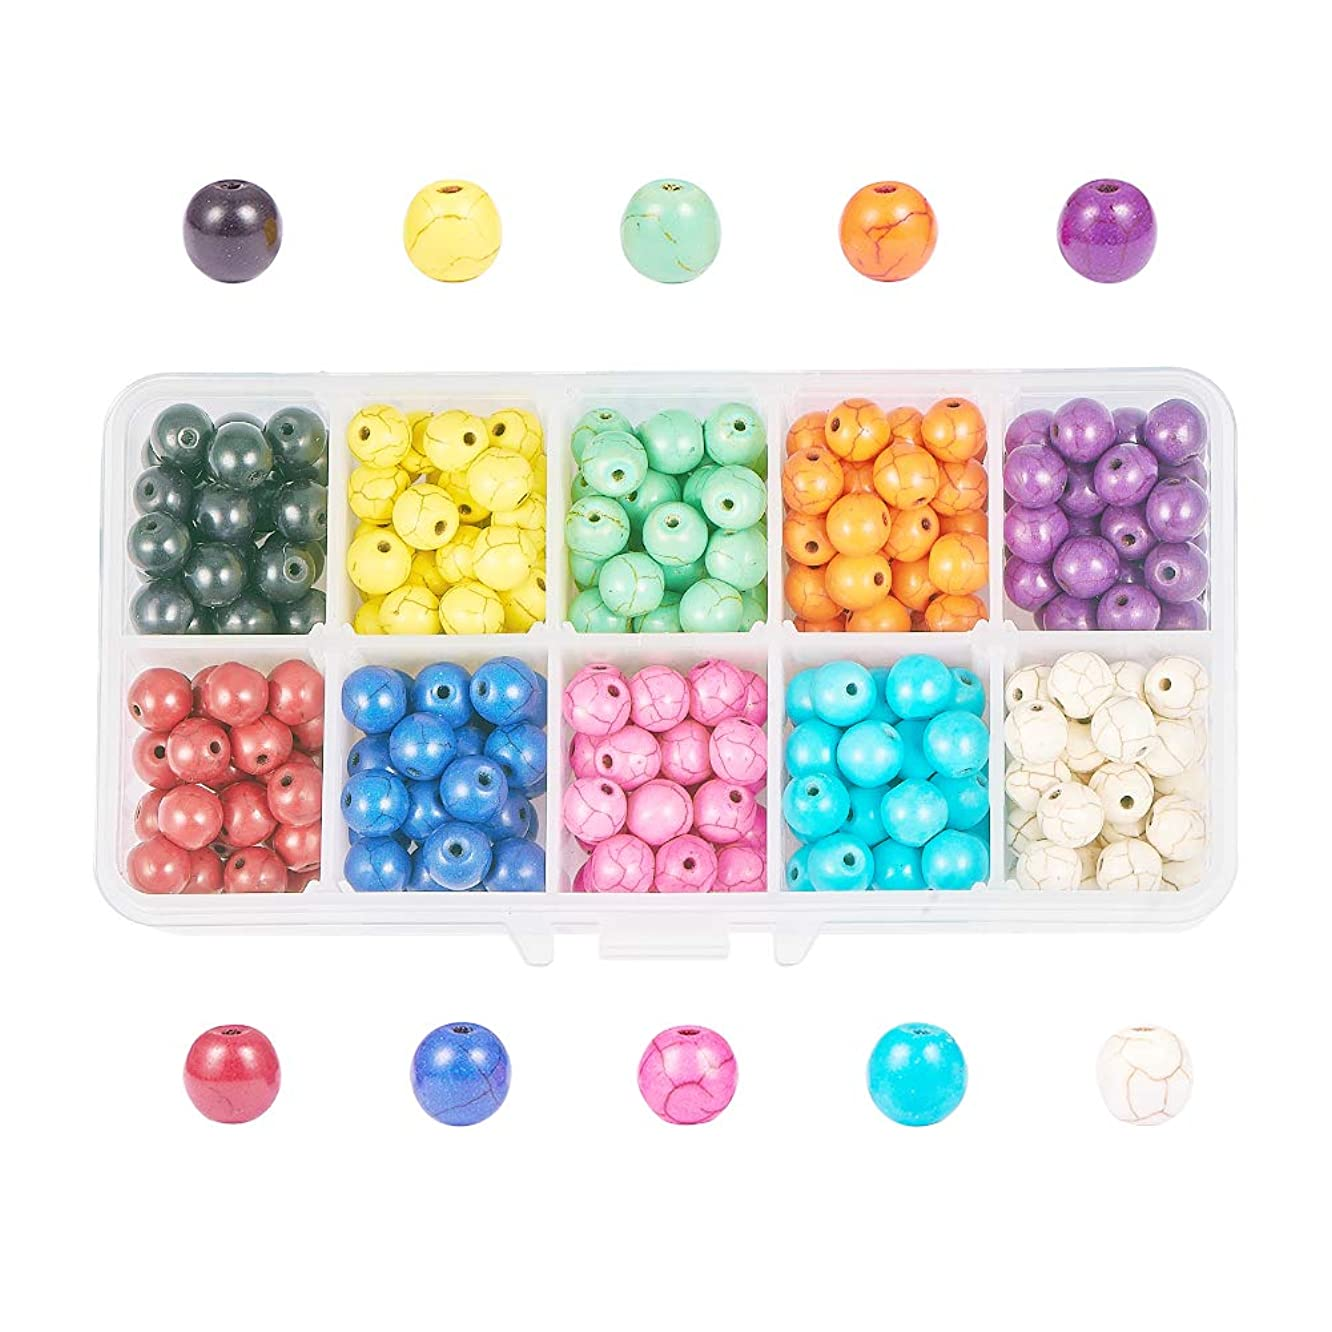 NBEADS 1Box 350Pcs/Box Jewelry Round Beads Synthetic Turquoise Beads for Jewelry Making, Mixed Color, About 8mm in Diameter, Hole: 1mm